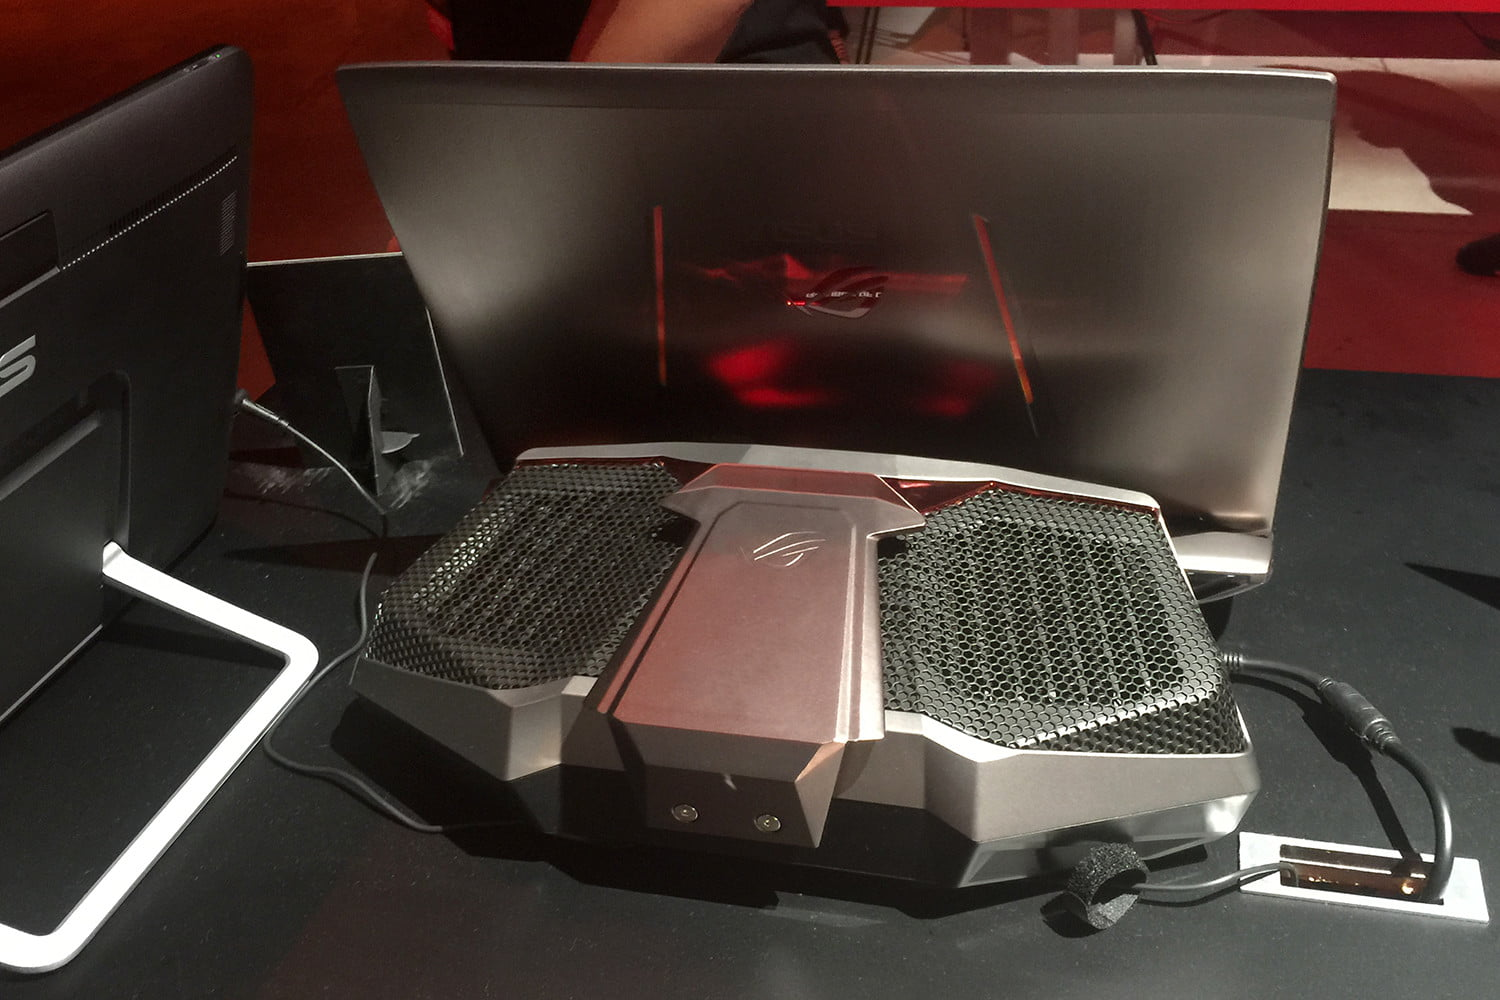 Soft tech: Hands on: Asus ROG GX700 Chilling out with the